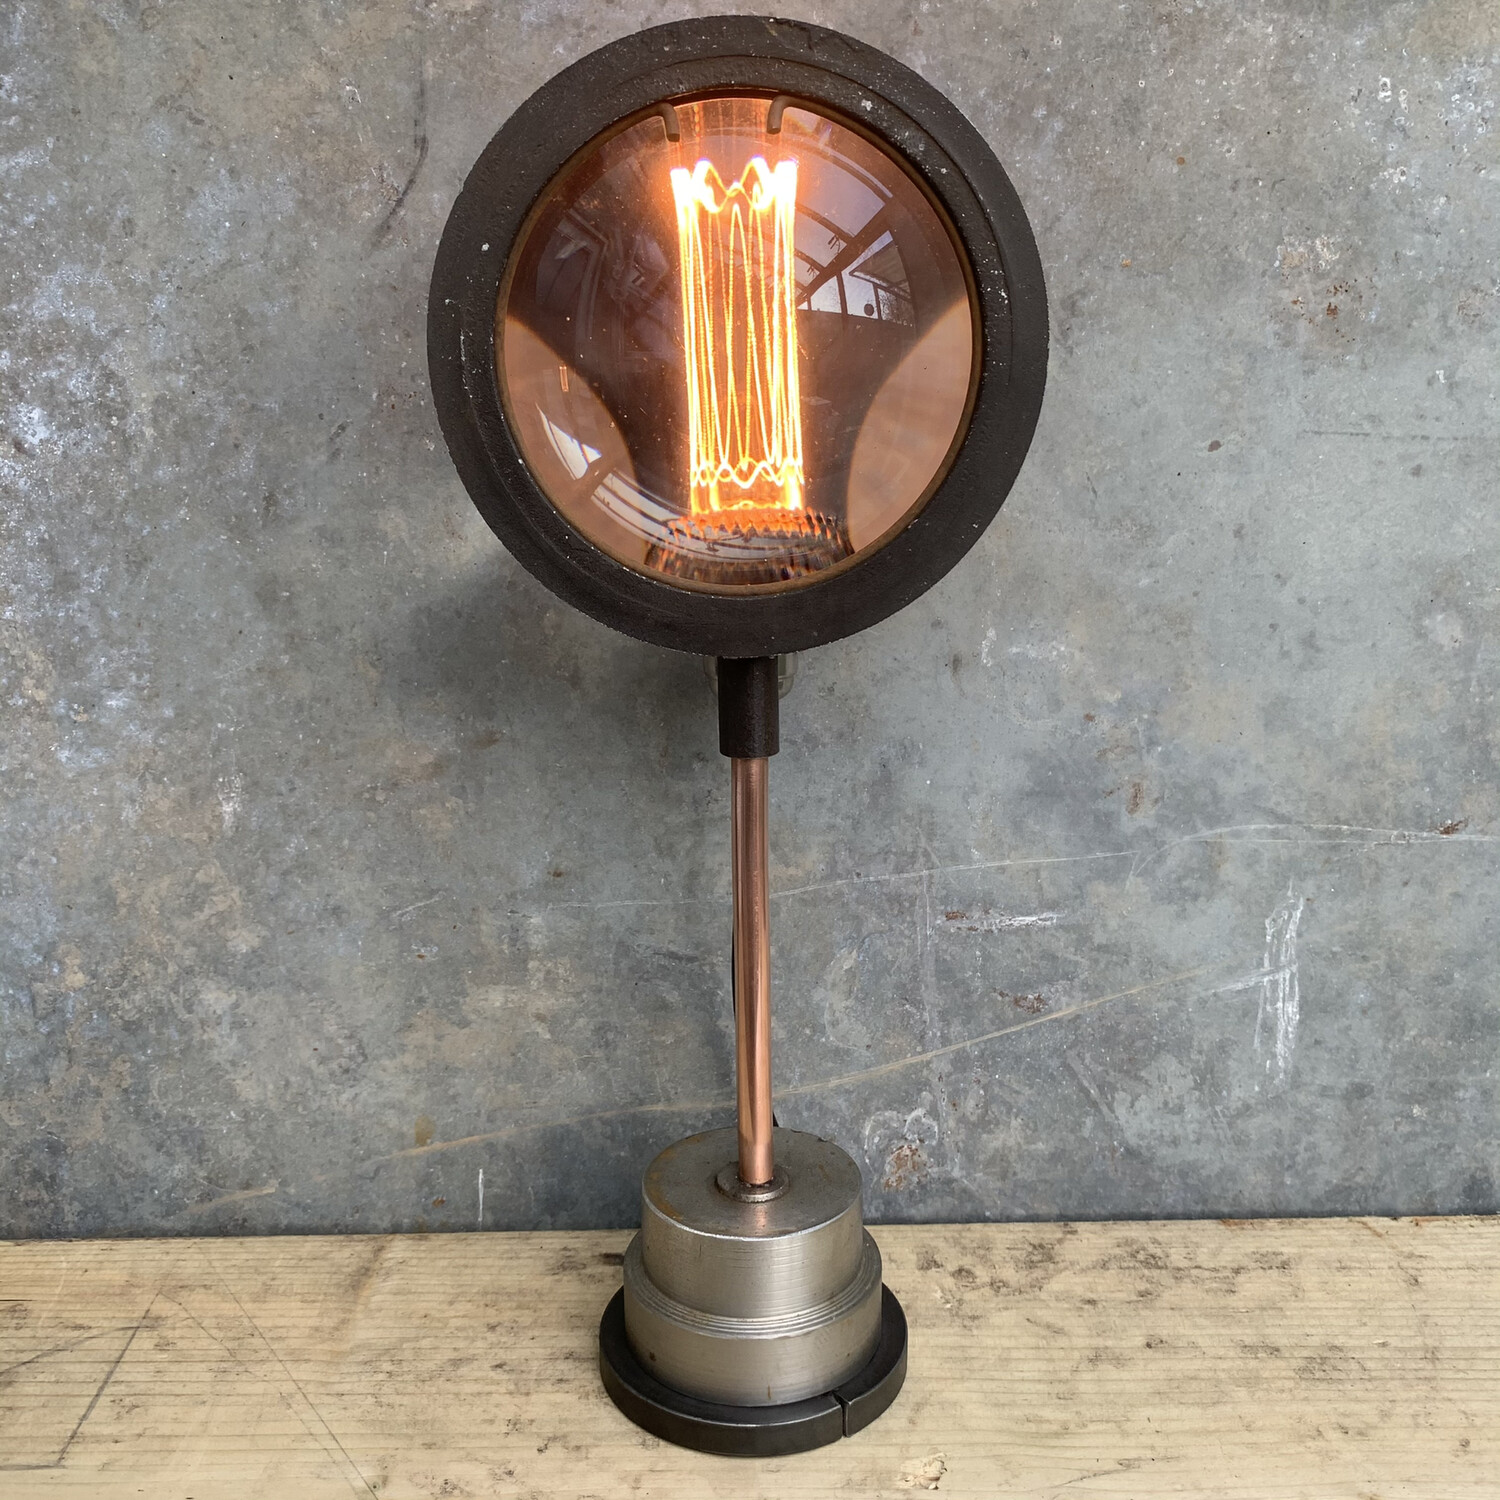 Vintage Theatre Lamp Lens On Bespoke Stand 2